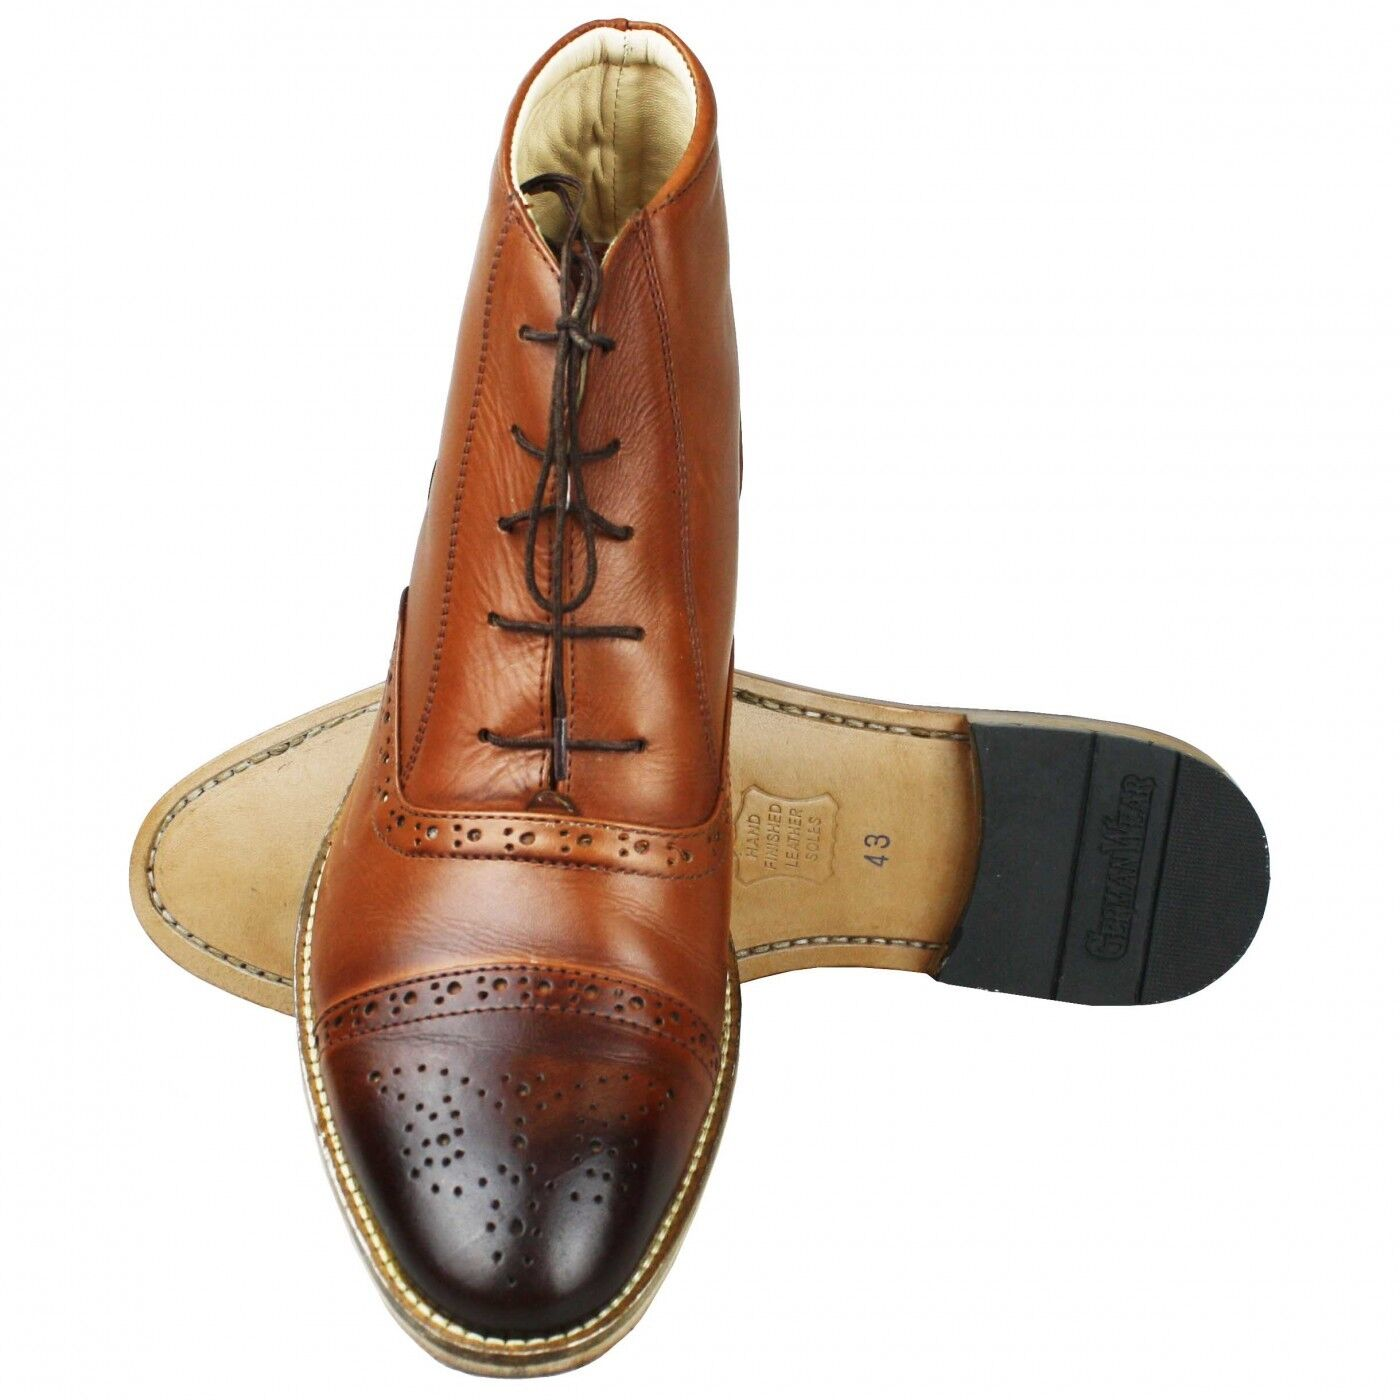 Business Stiefelette Schuhe Brogues Stiefelette Business Lederschuhe mit Ledersohle Schuhe braun 7995f4